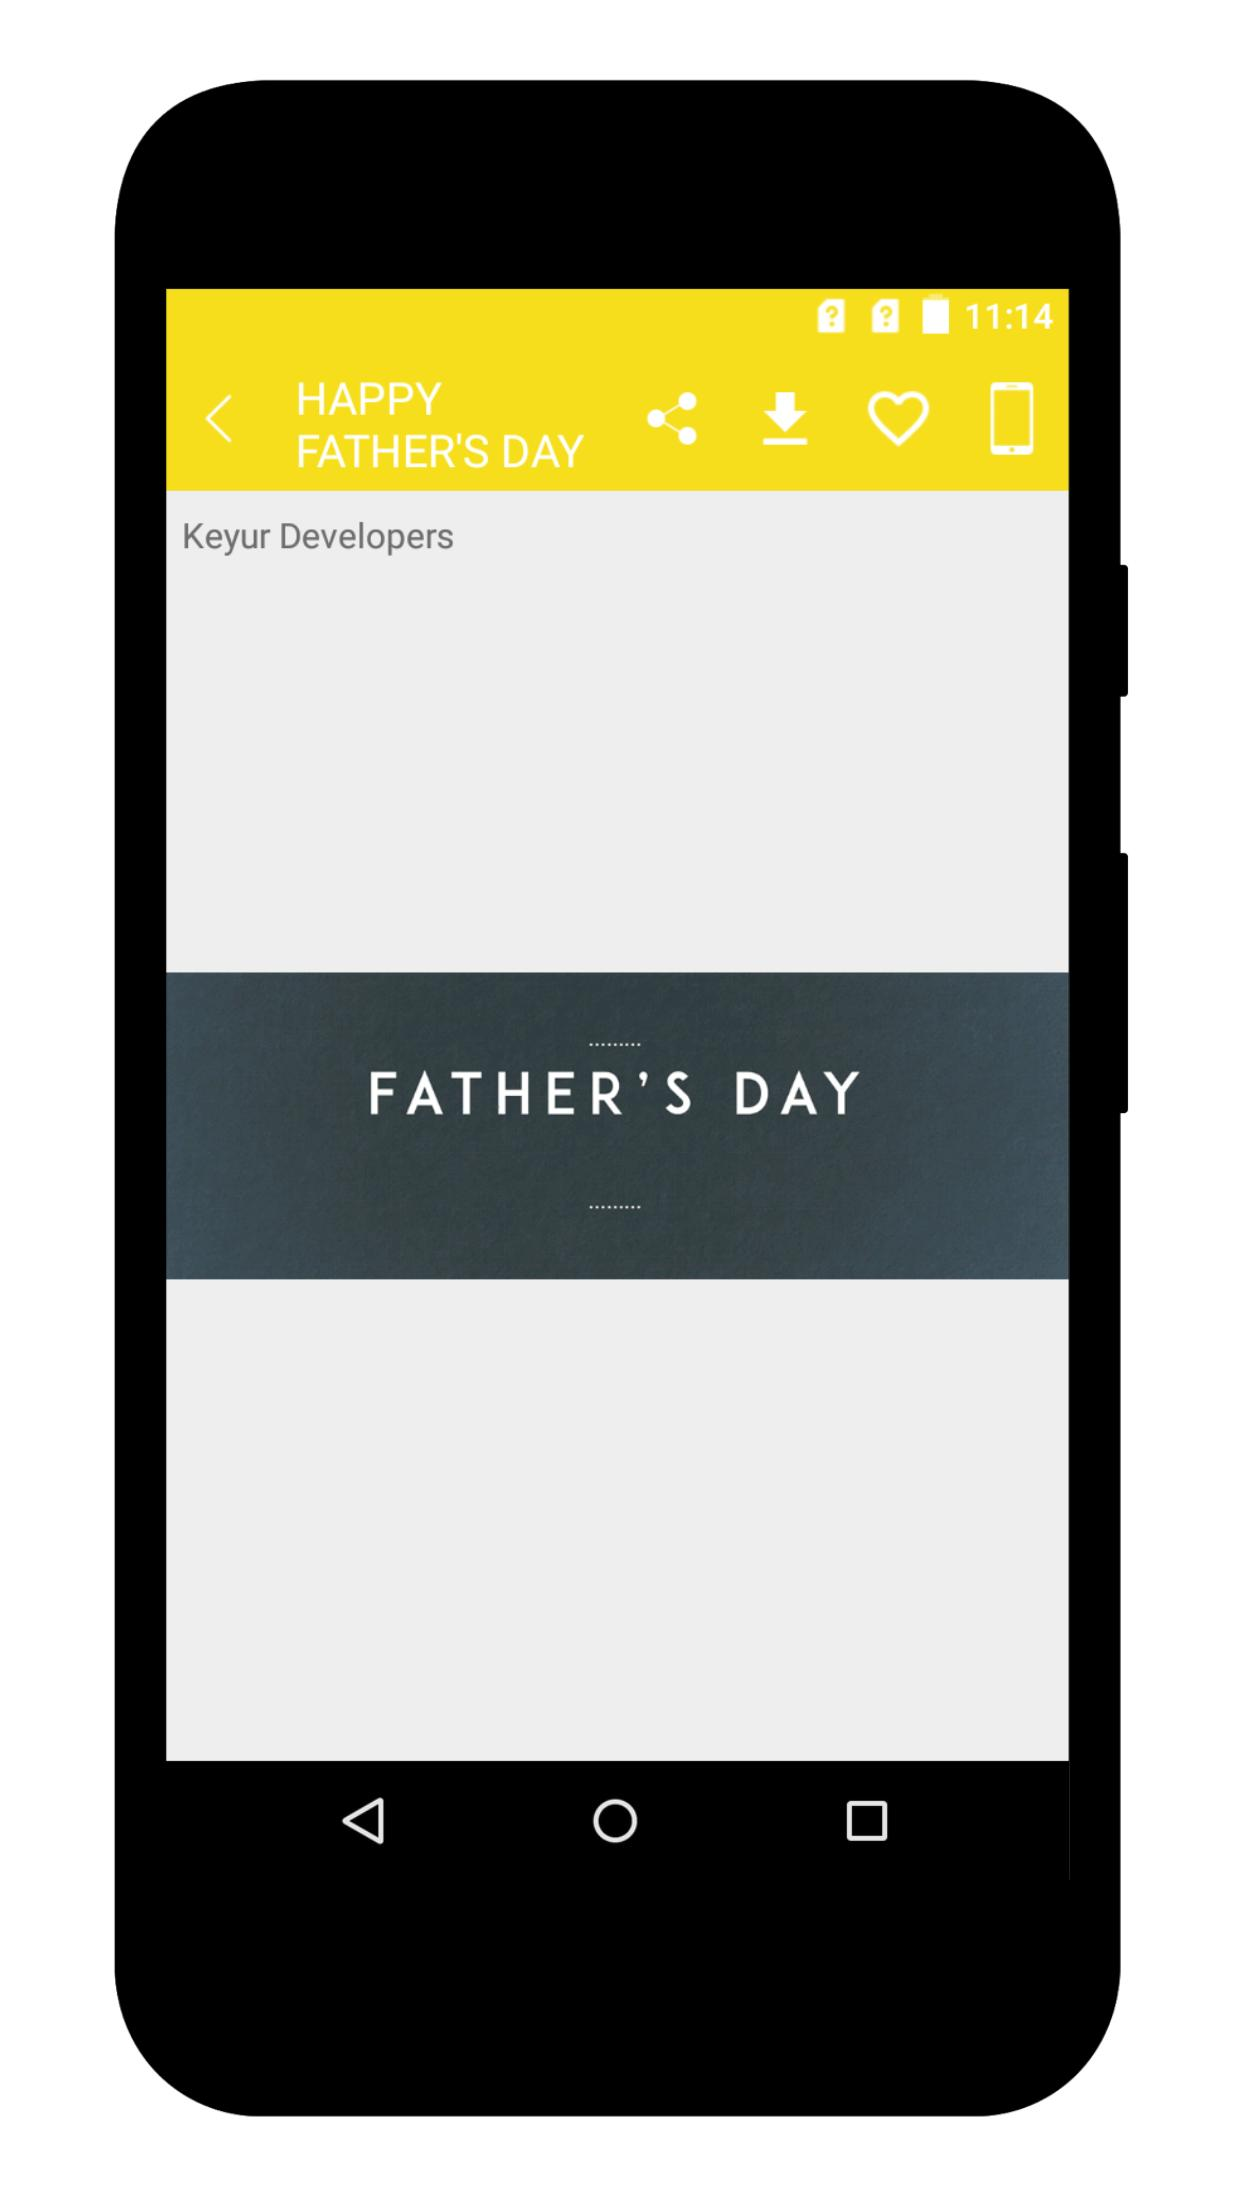 Happy Fathers Day Live Wallpapers 2019 for Android   APK Download 1242x2208